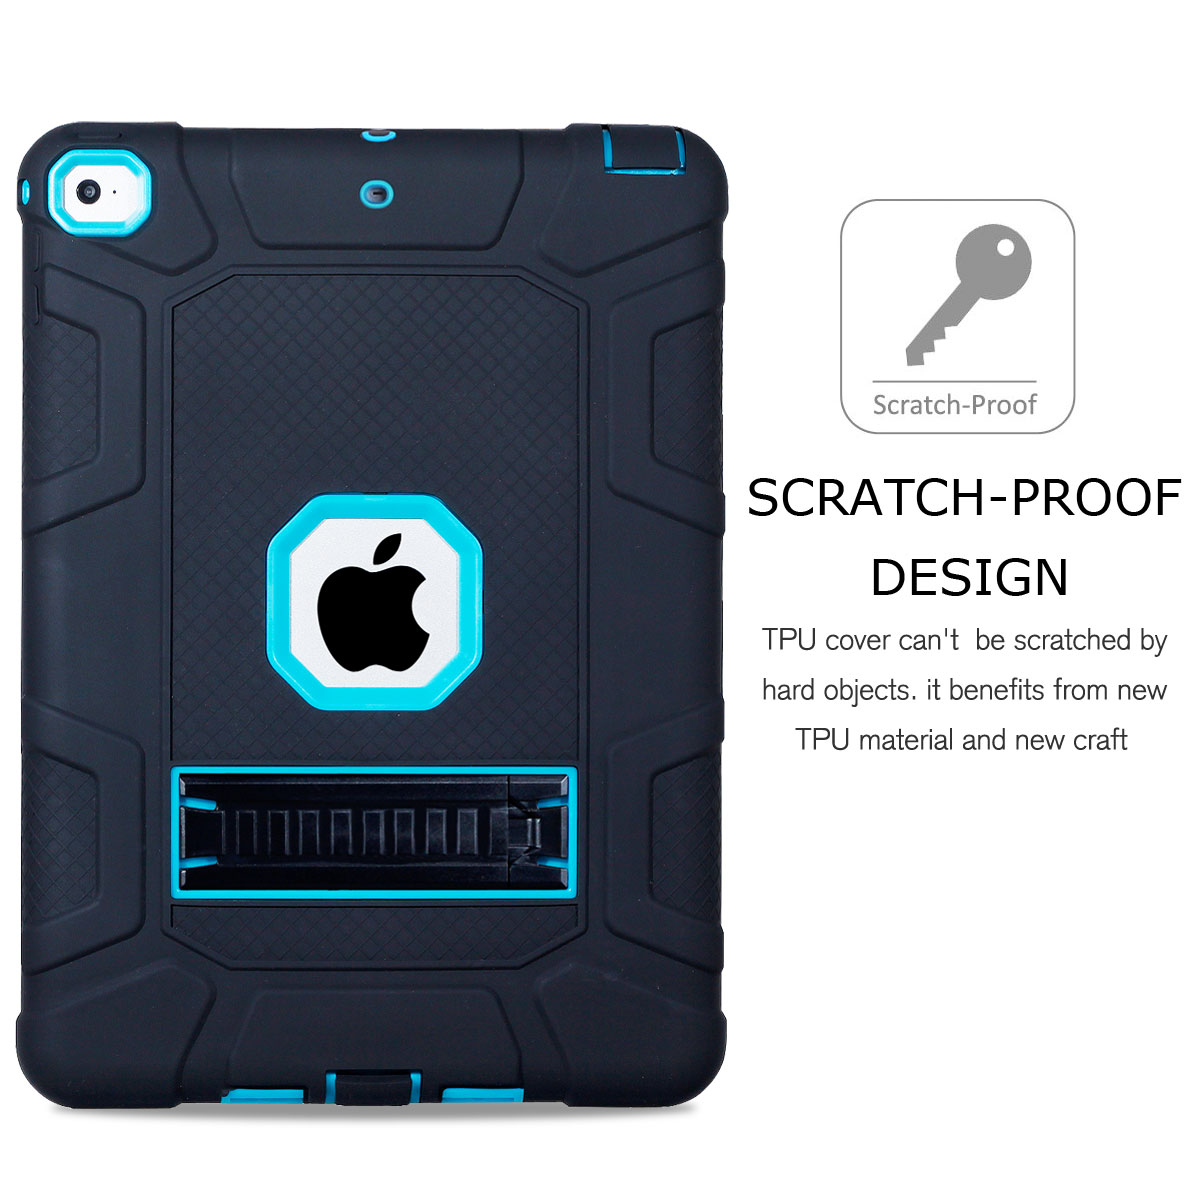 Heavy-Shockproof-Rubber-Stand-Case-Cover-For-Apple-iPad-234-5-Mini-Air-Pro-9-7-034 thumbnail 35